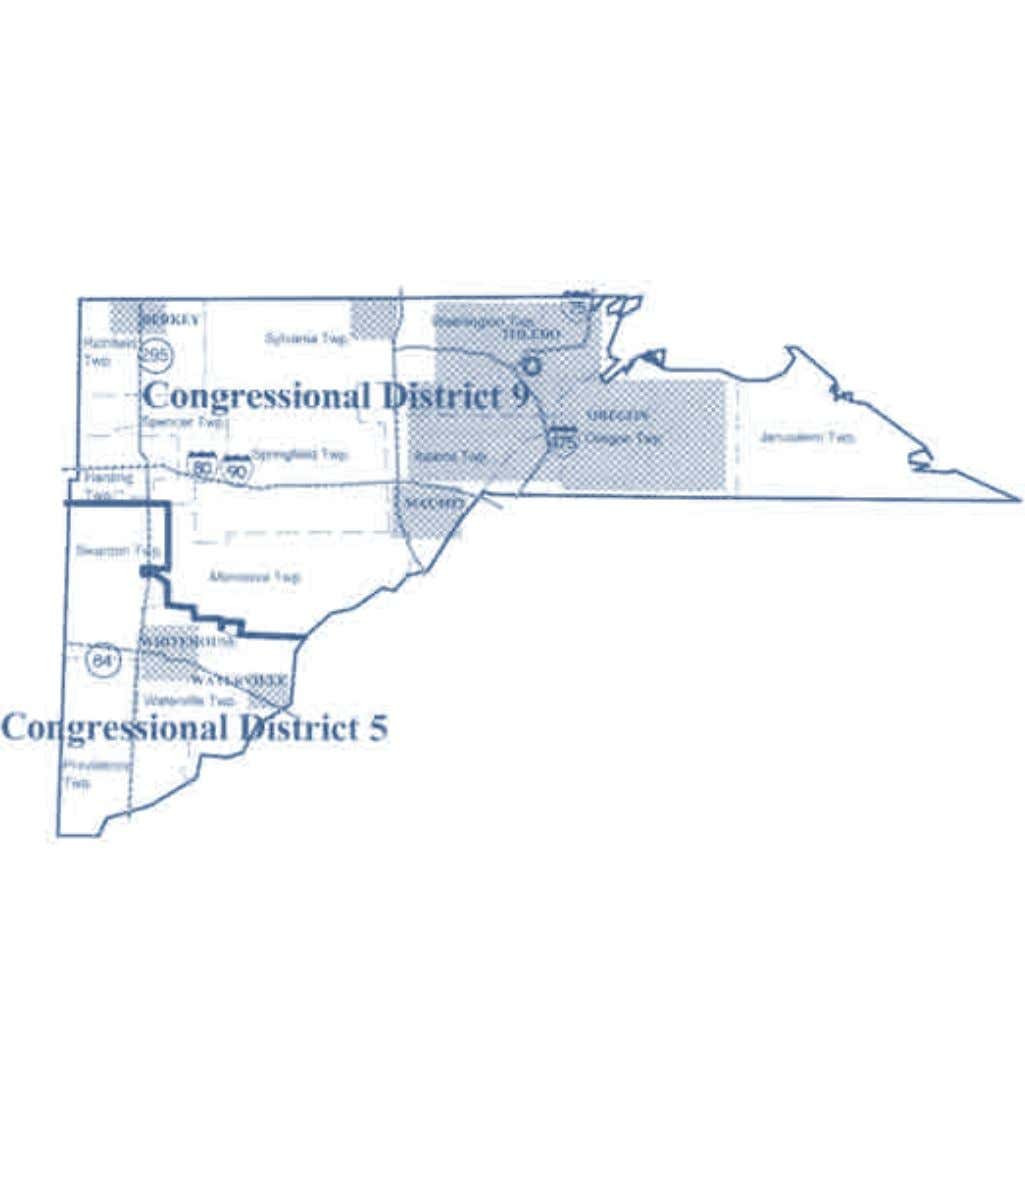 2002-2012 OhiO District Maps Lucas County Congressional Districts Office of the Ohio Secretary of State 15